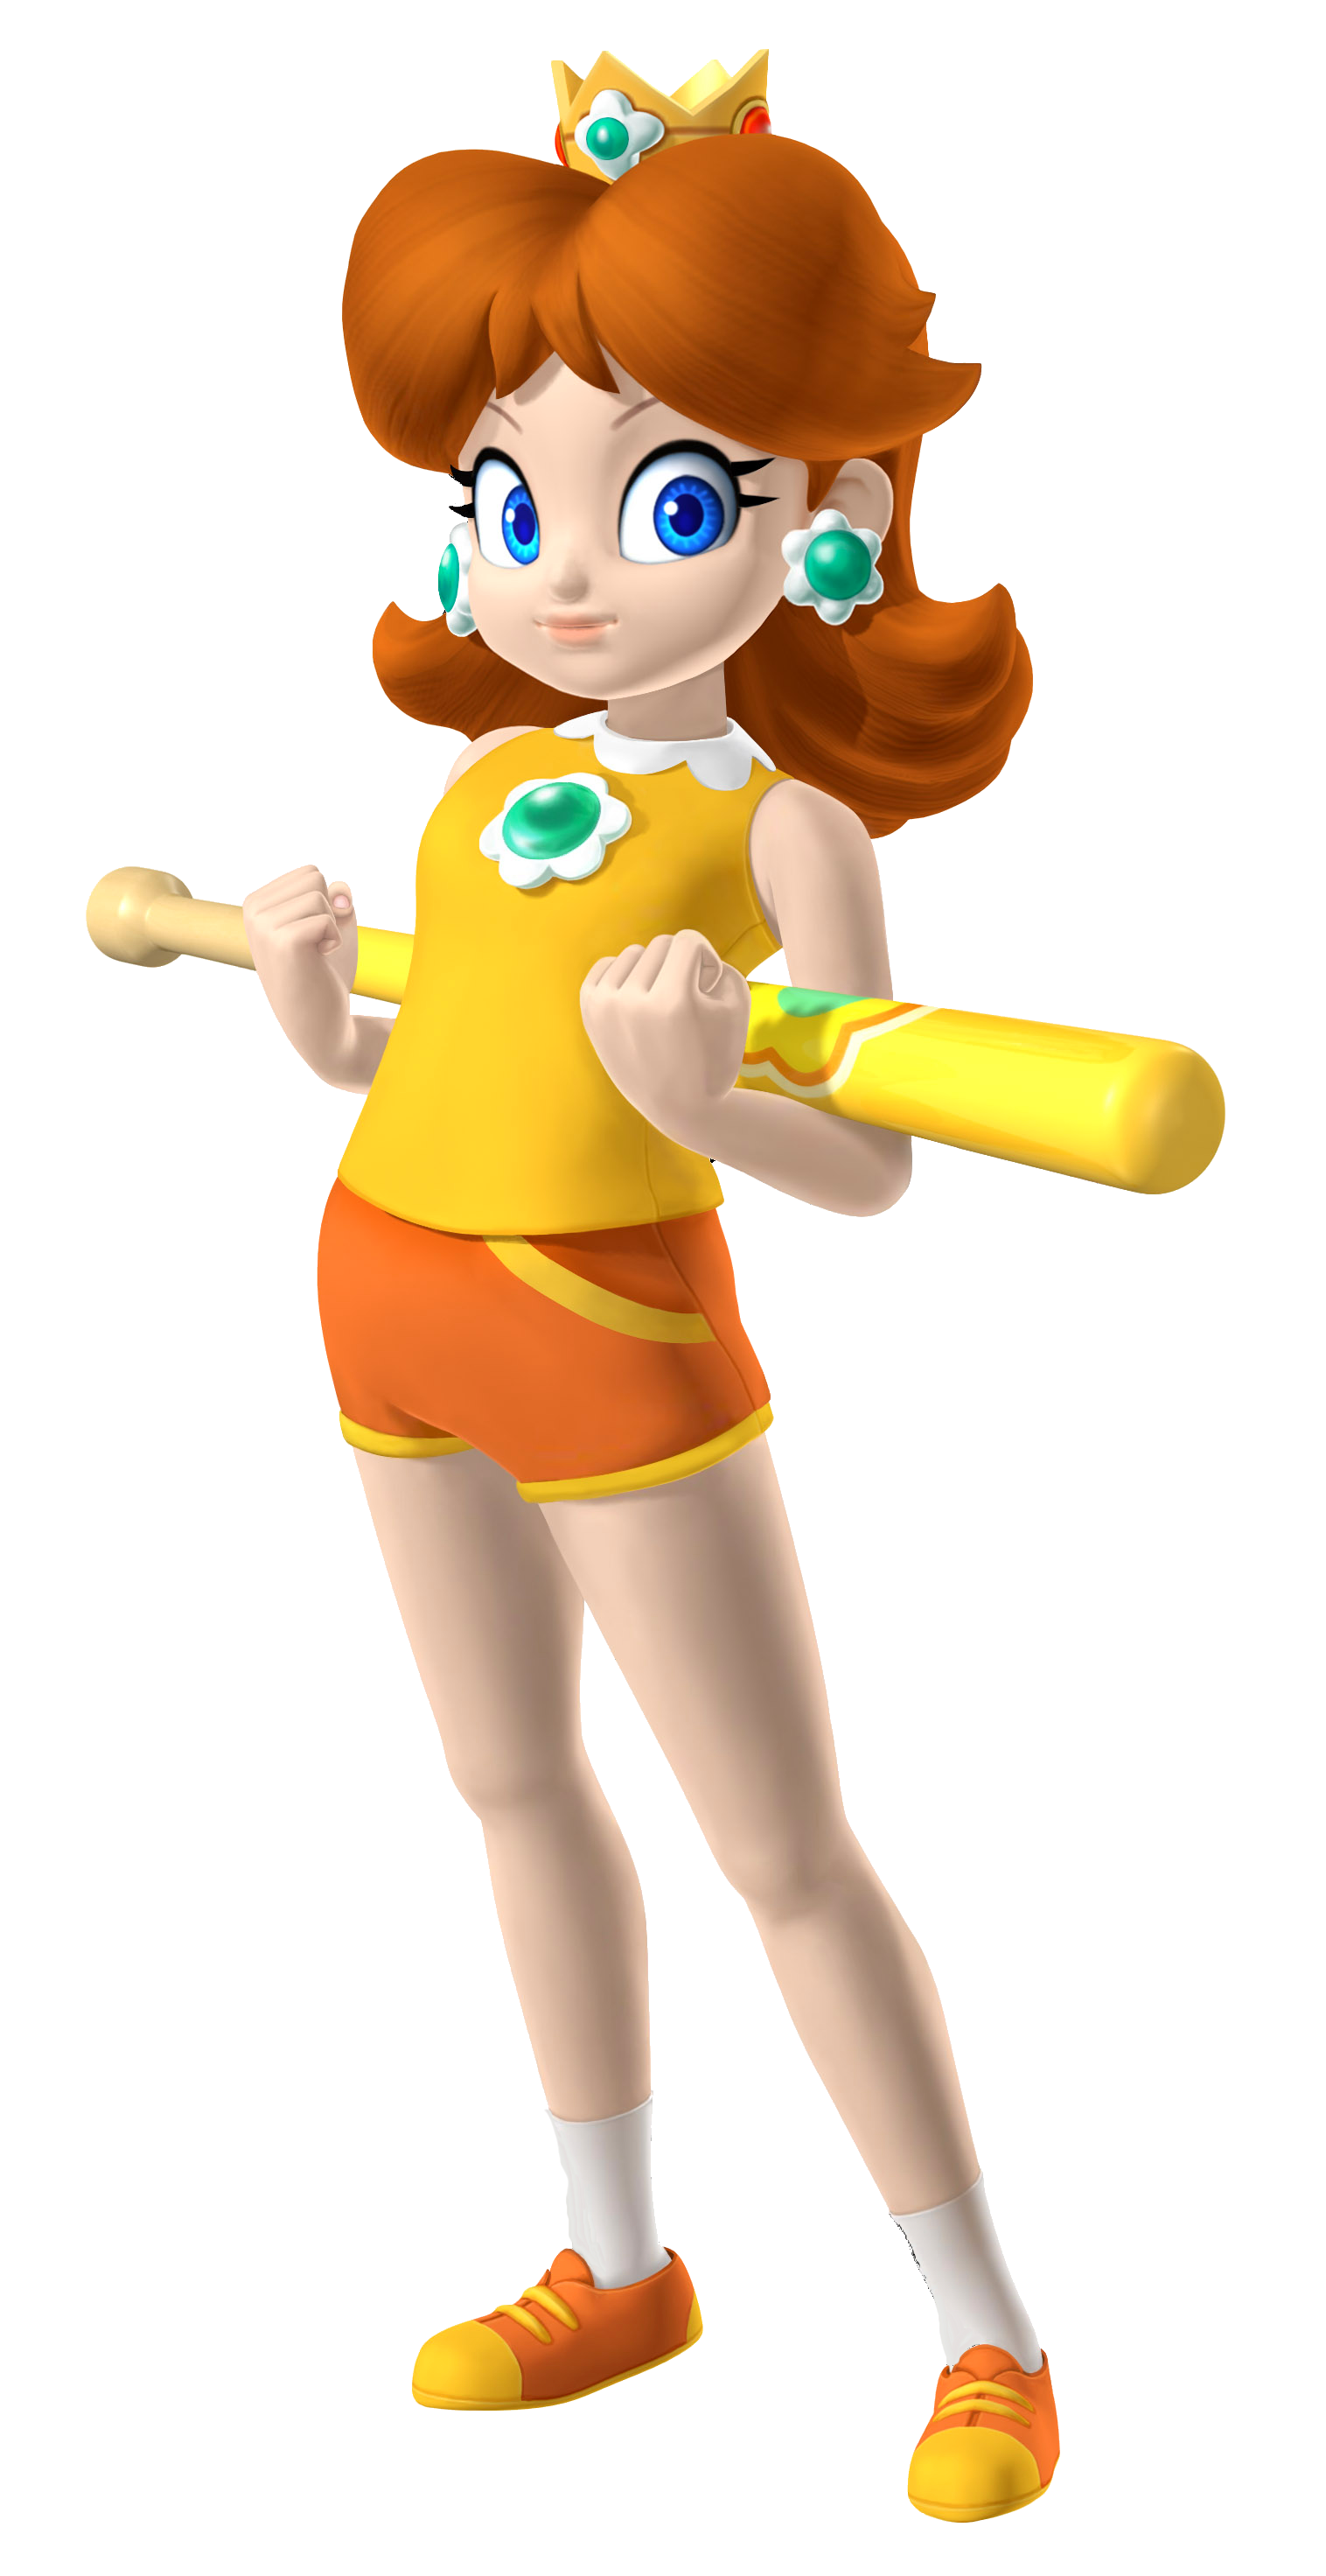 Image daisybaseball png we. Mario clipart pitcher